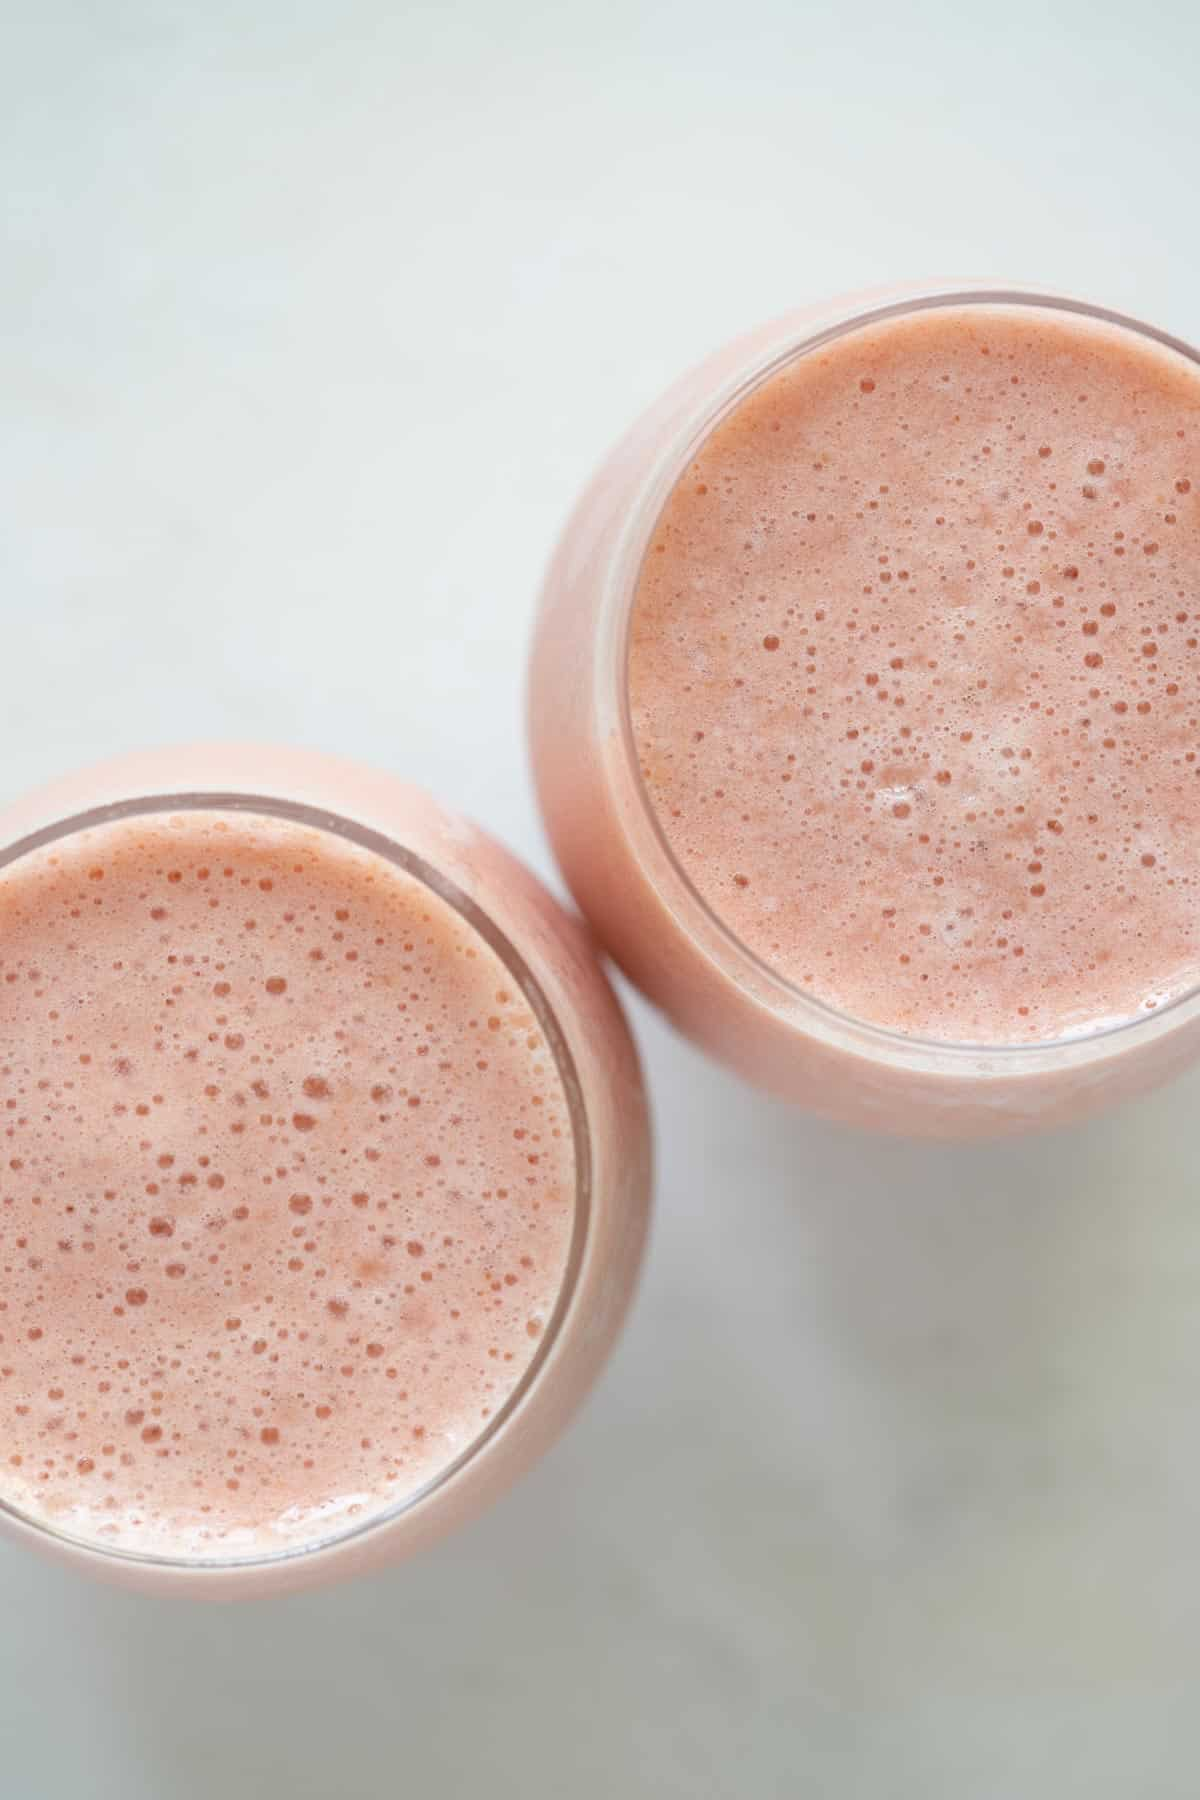 strawberry pineapple smoothie in 2 cups